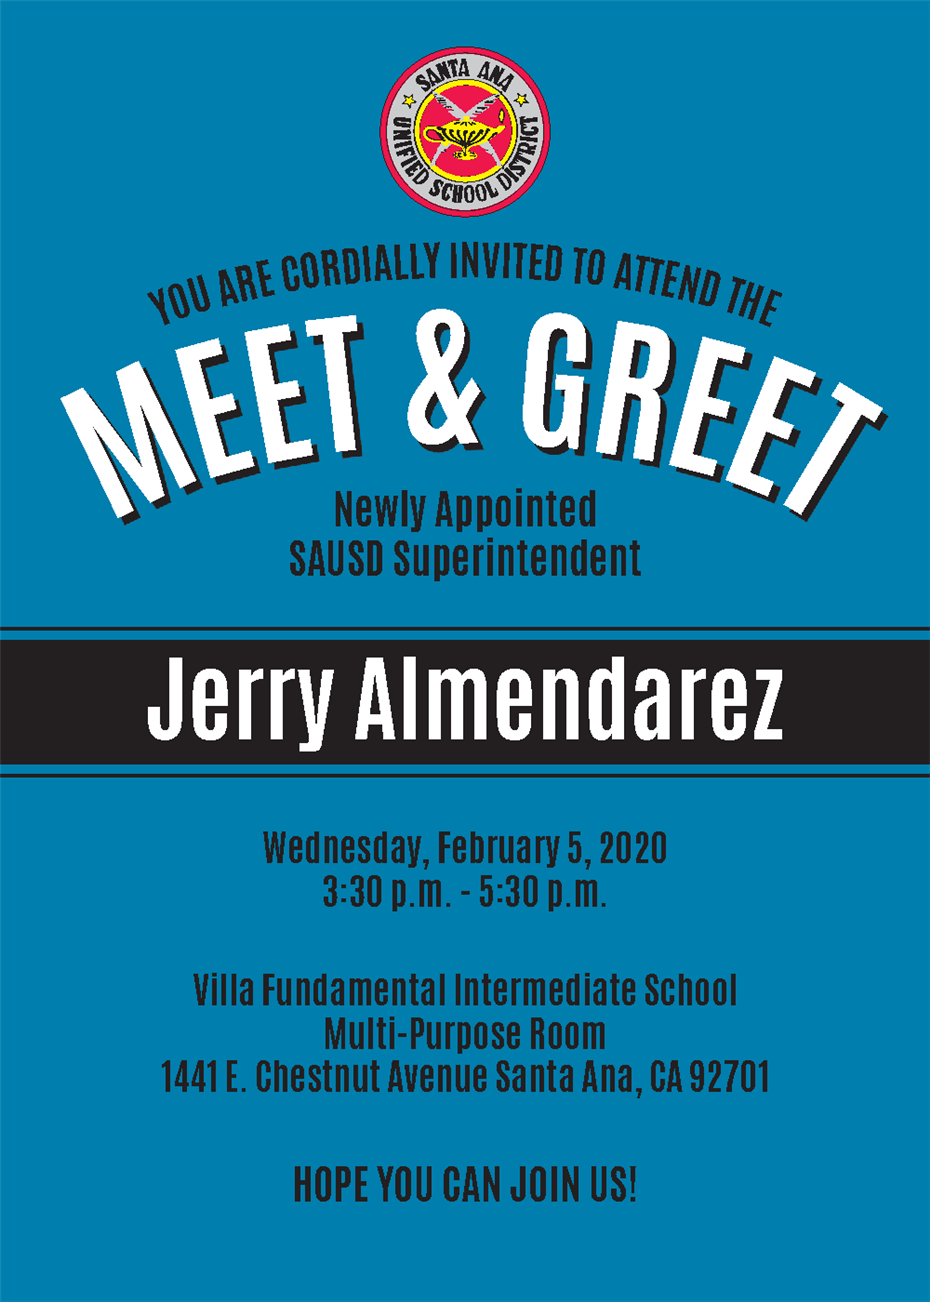 Meet and Greet for Newly Appointed SAUSD Superintendent Jerry Almendarez